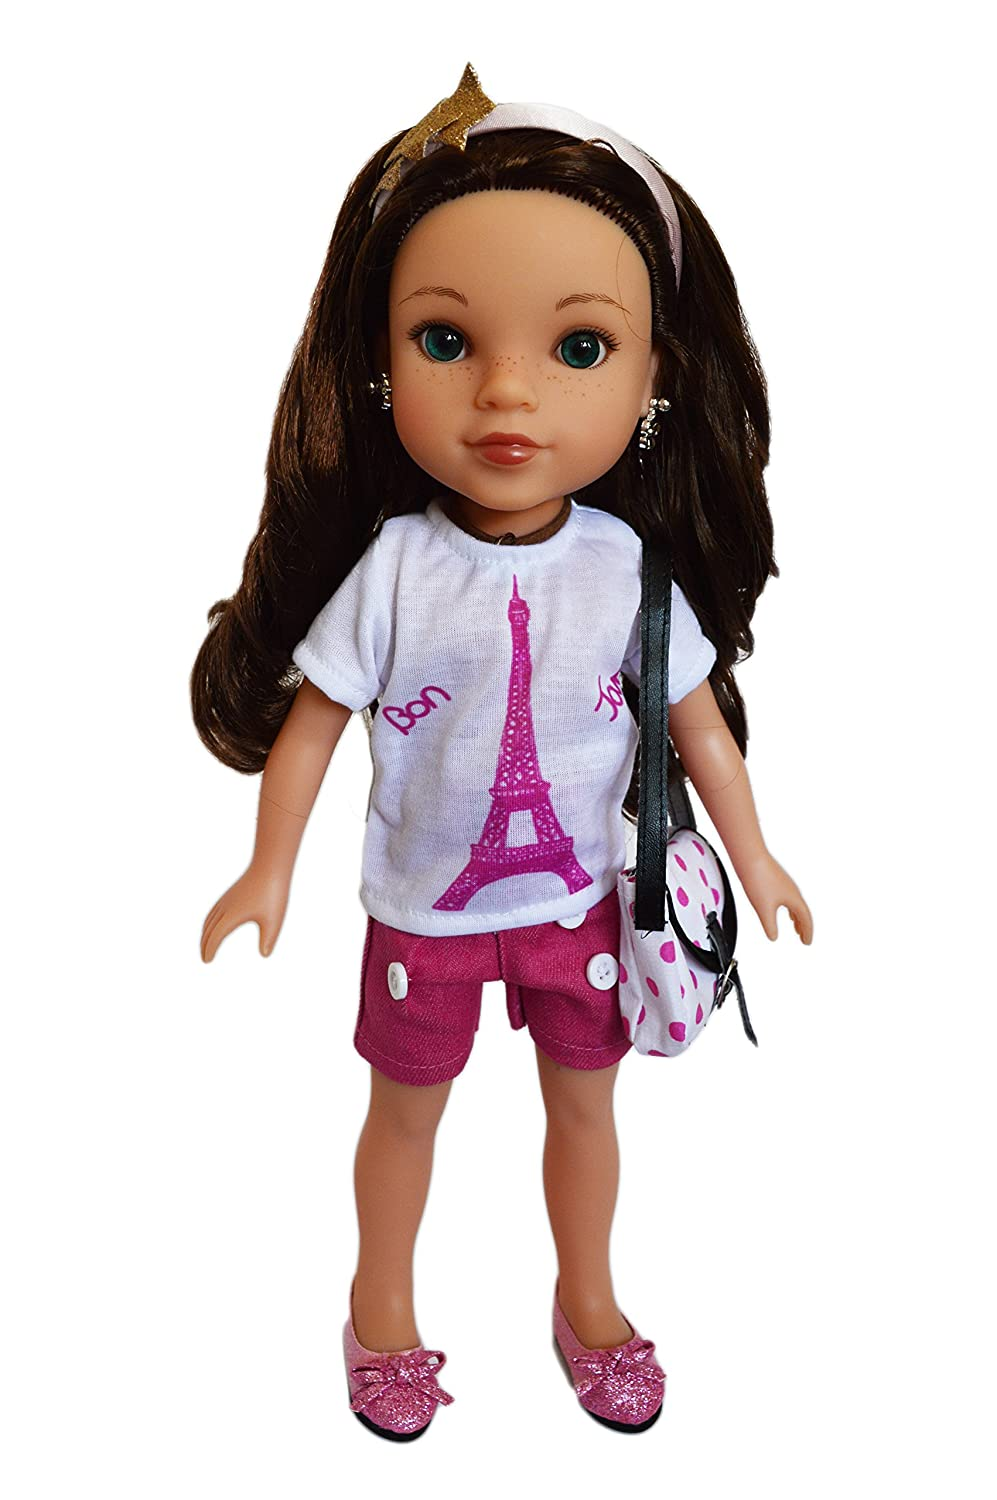 Brittanys My Paris Outfit with Purse and Shoes Compatible with Wellie Wisher Dolls Glitter Girl Dolls and Hearts to Hearts Dolls